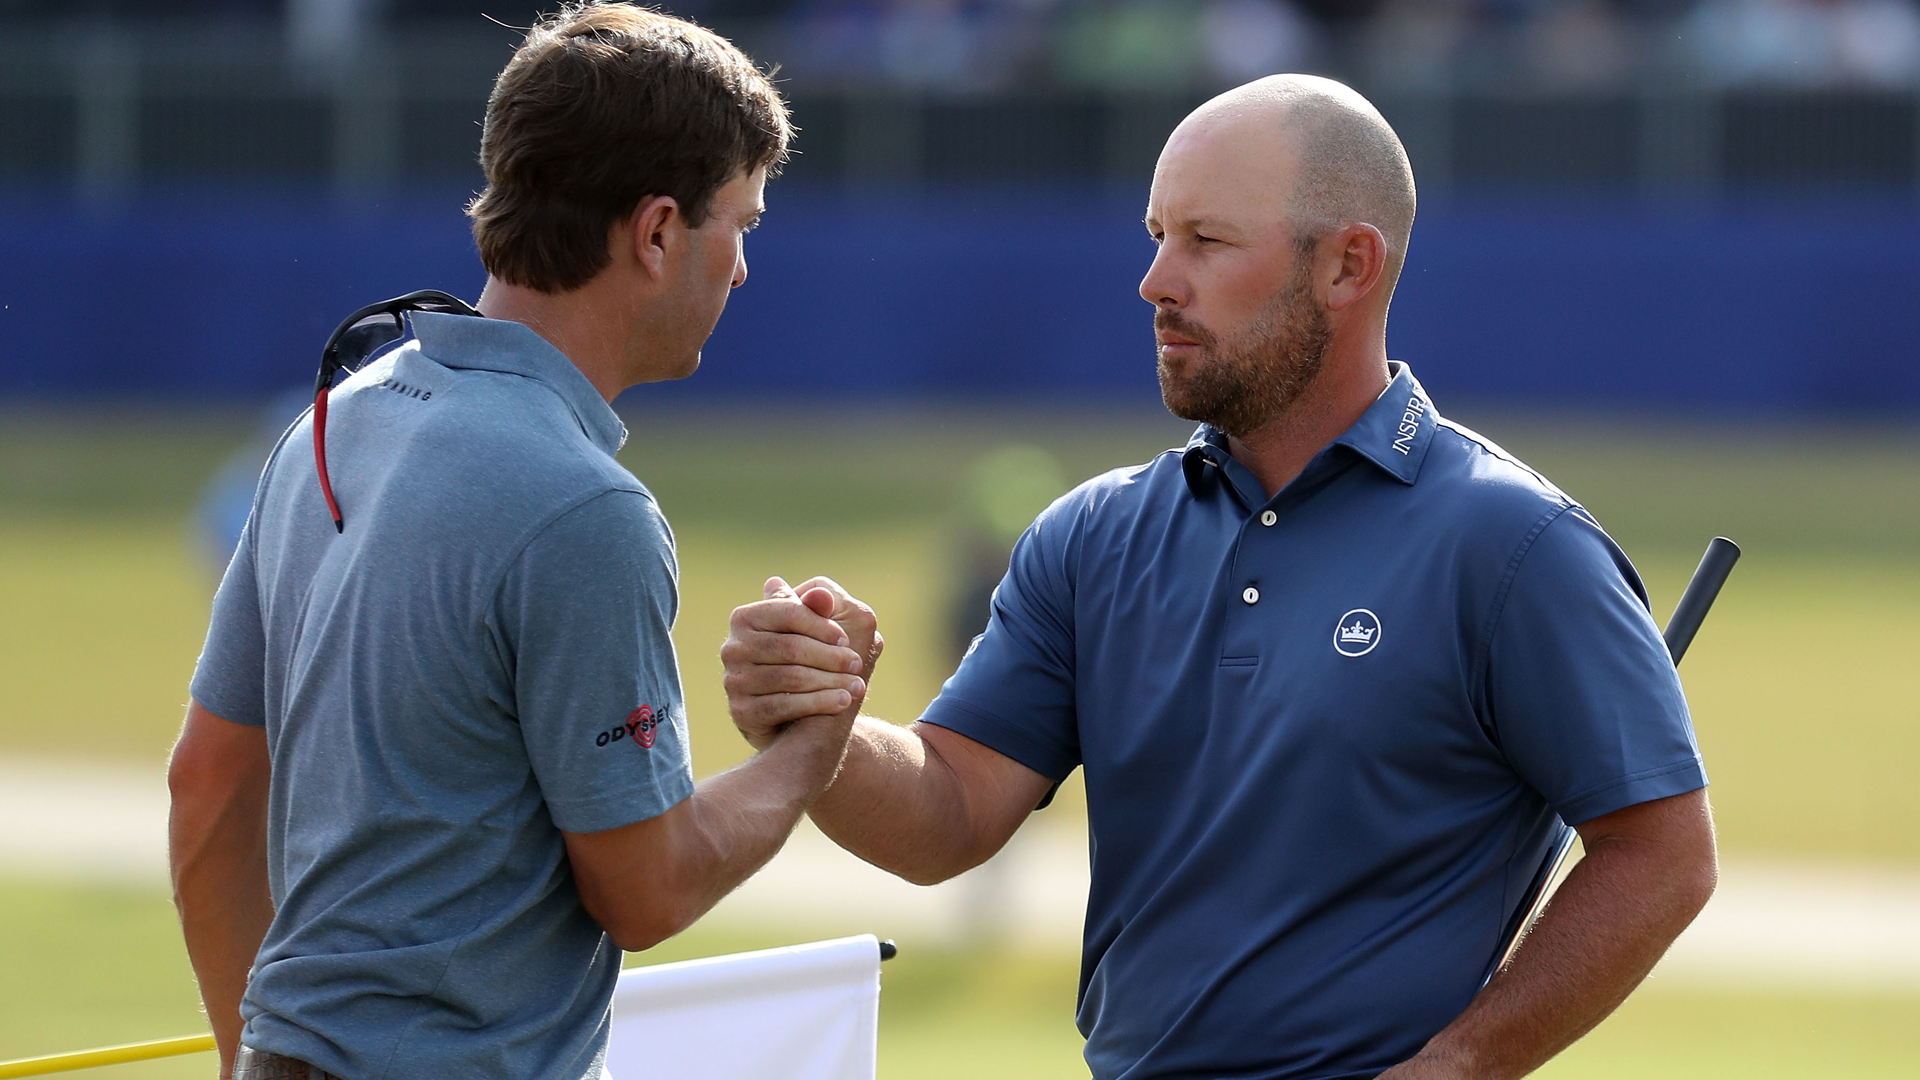 Thursday's golf roundup: Two teams share lead at Zurich Classic